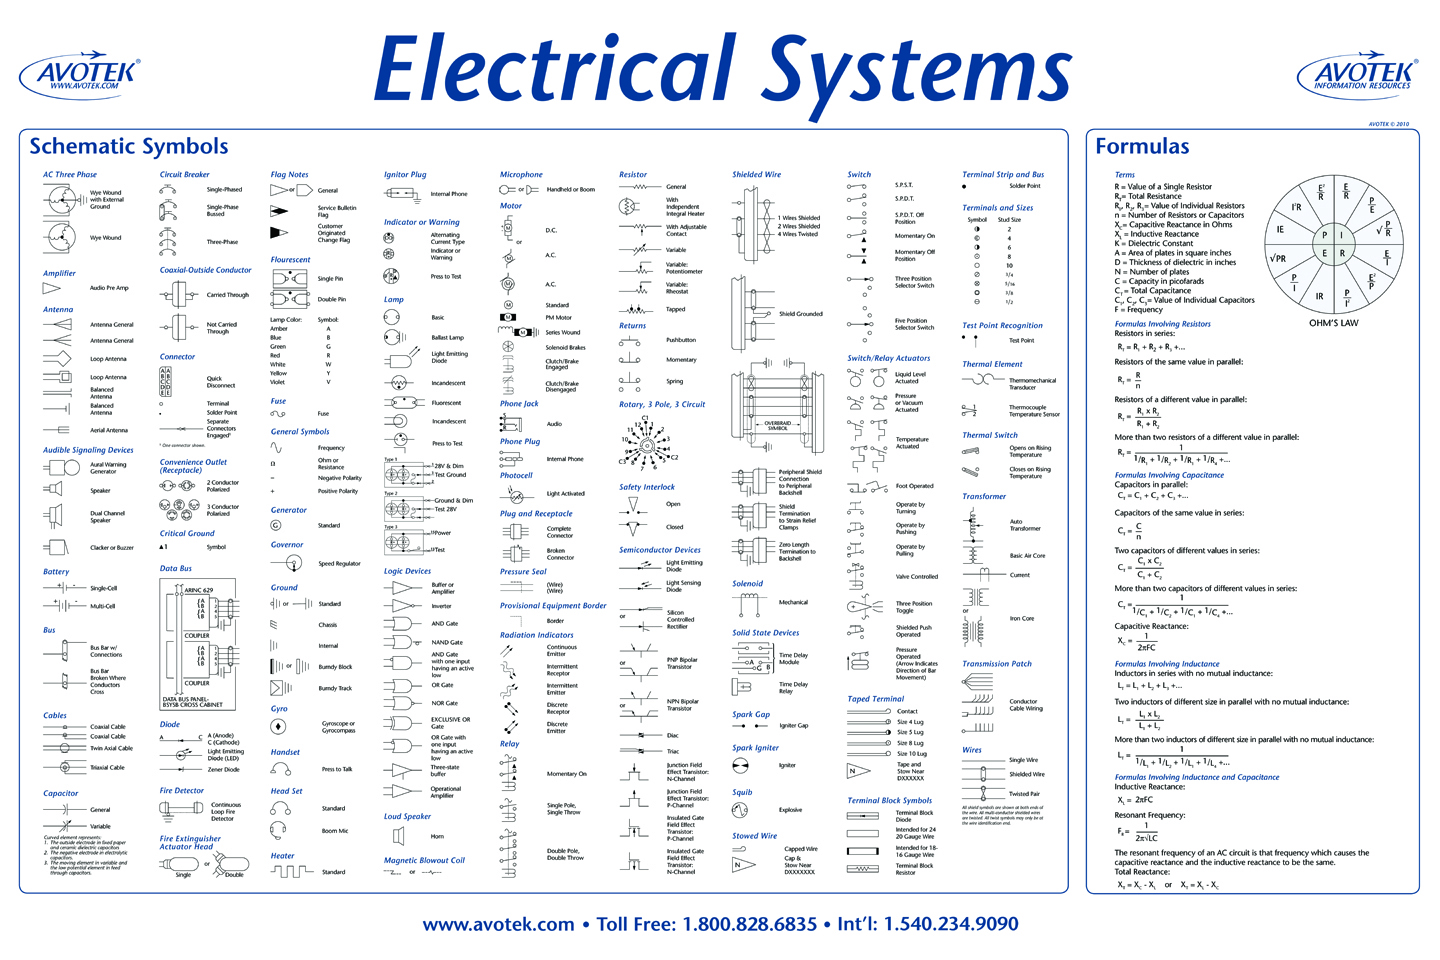 POSTER_Electrical classroom poster electrical systems avotek aircraft wiring diagram symbols at soozxer.org